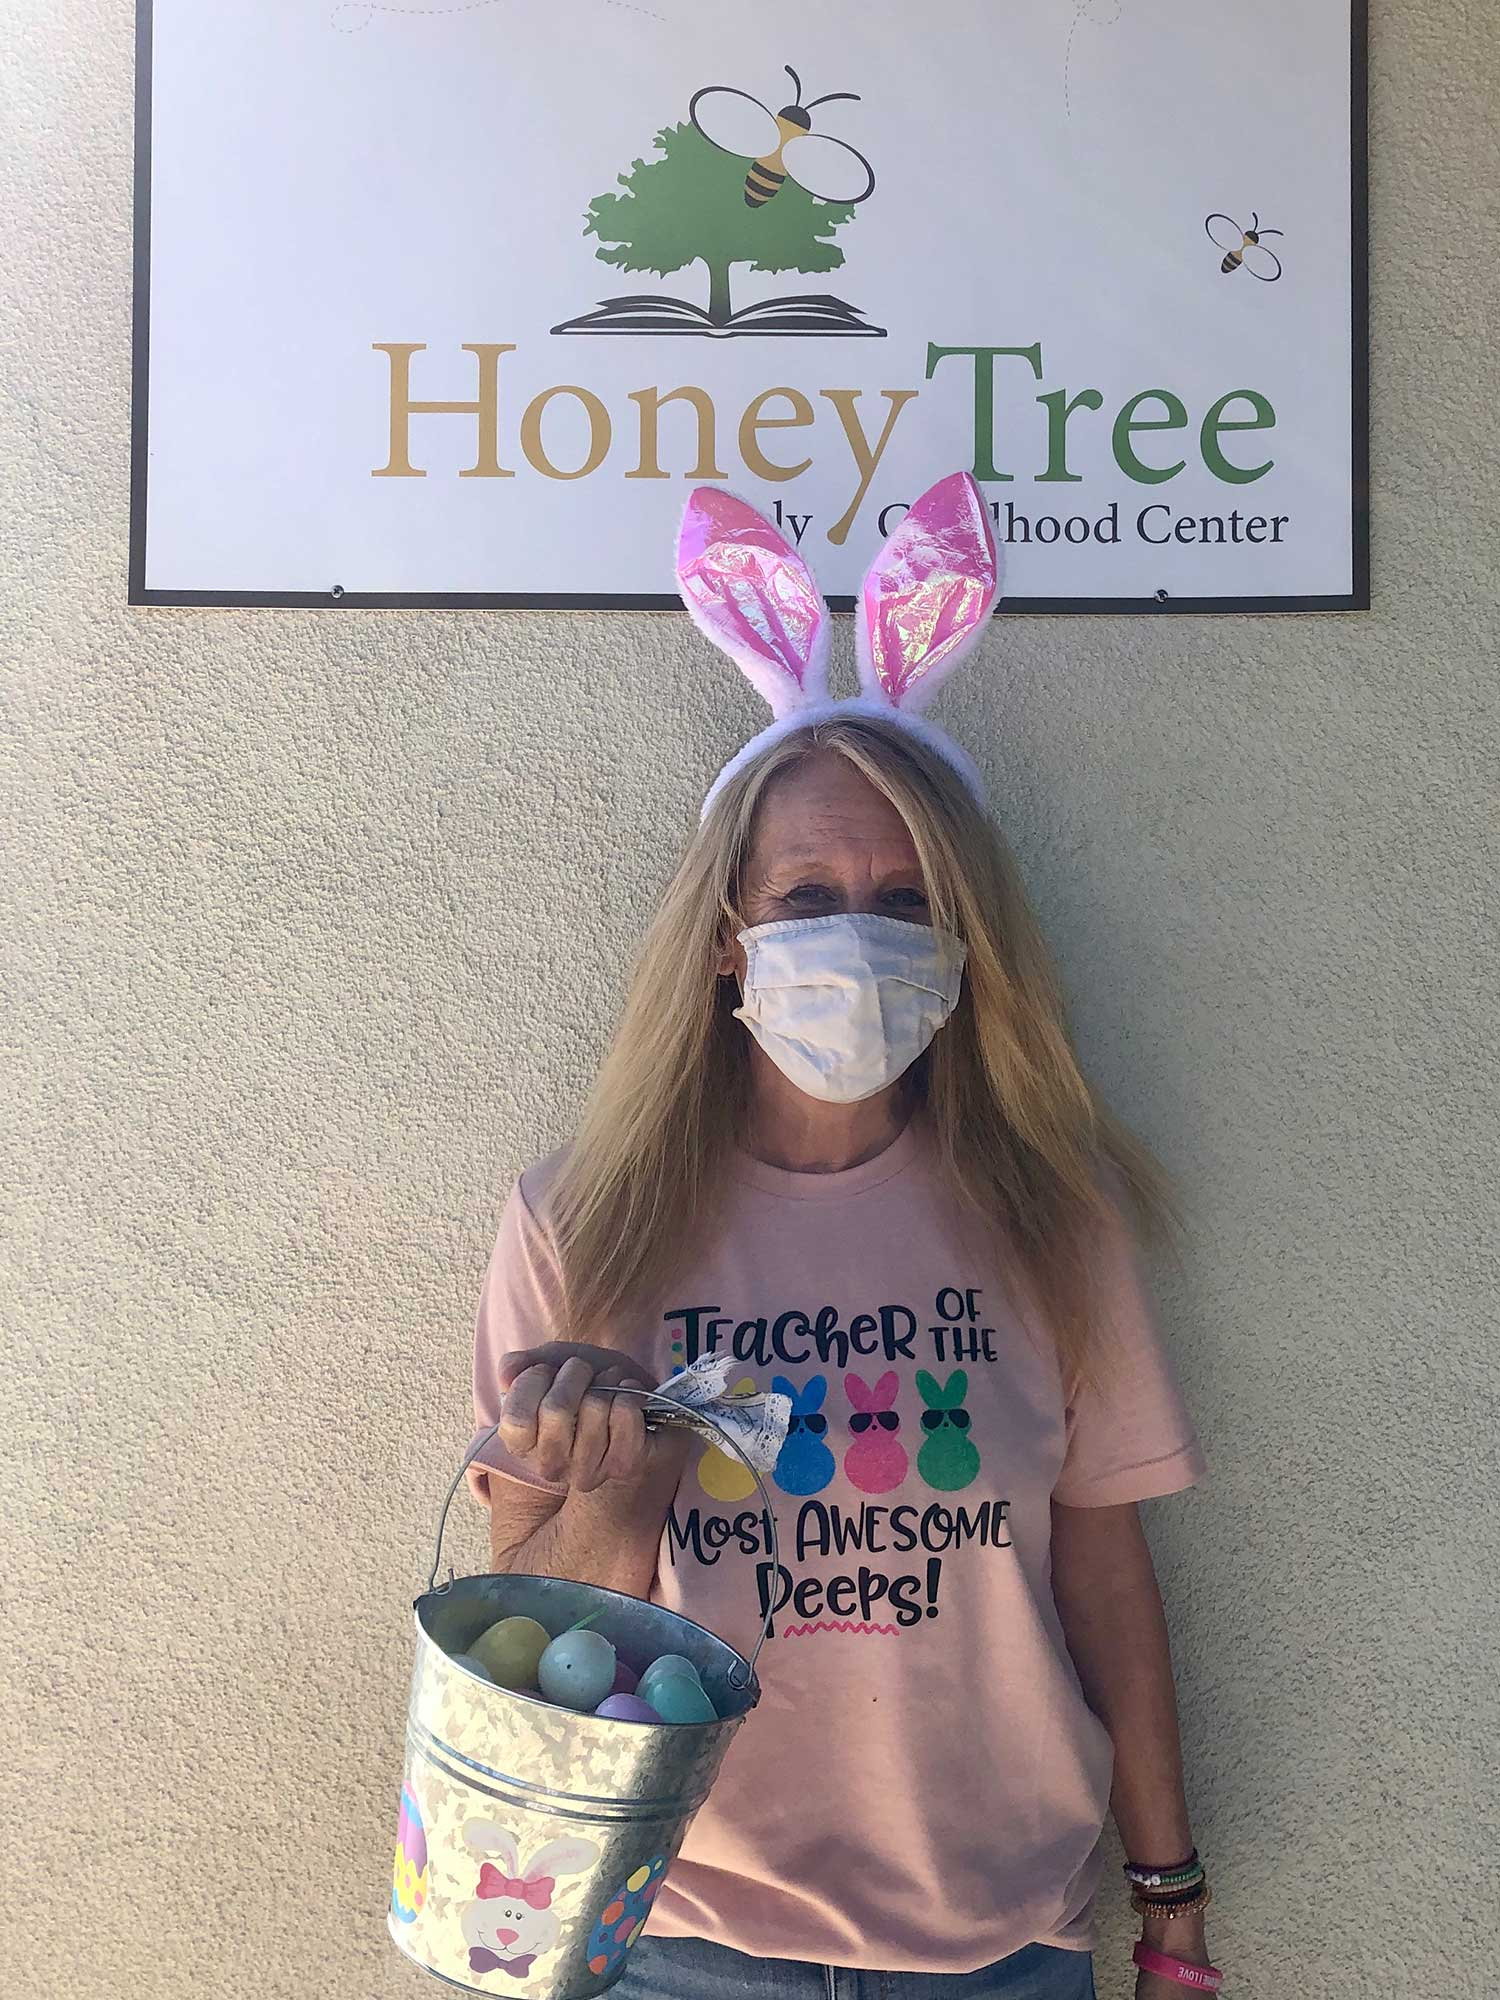 Teacher with Rabbit Ears In Front of Honey Tree Sign